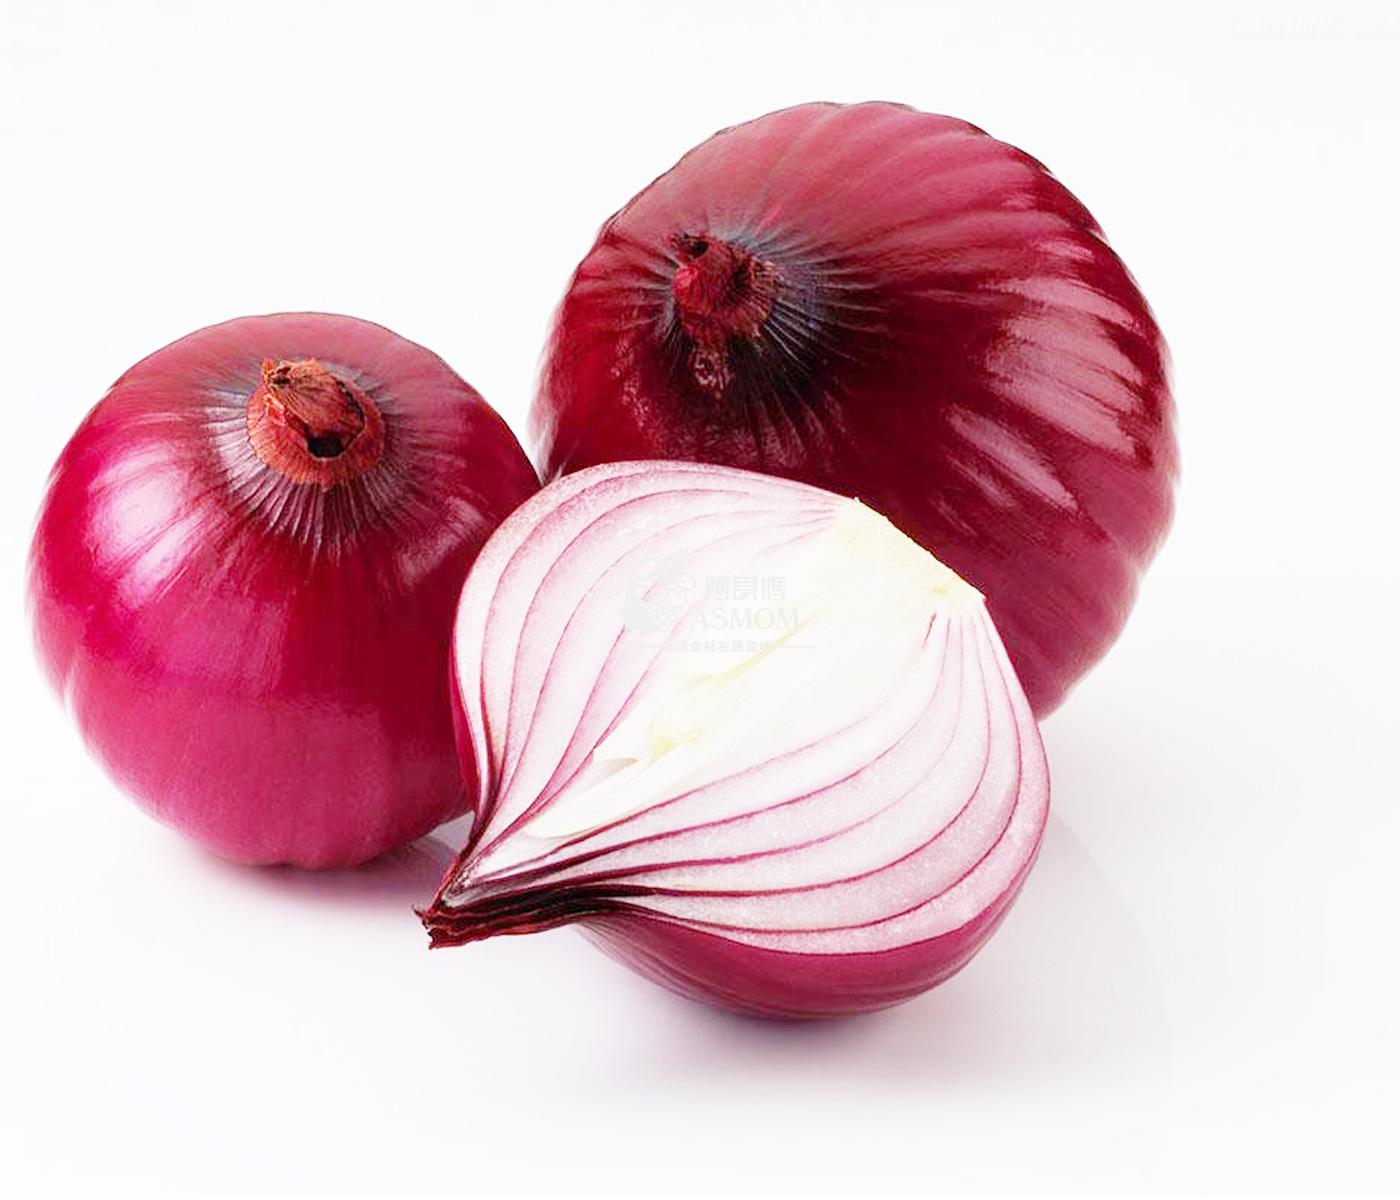 By Helen Banvelos NO.87: Onion #08